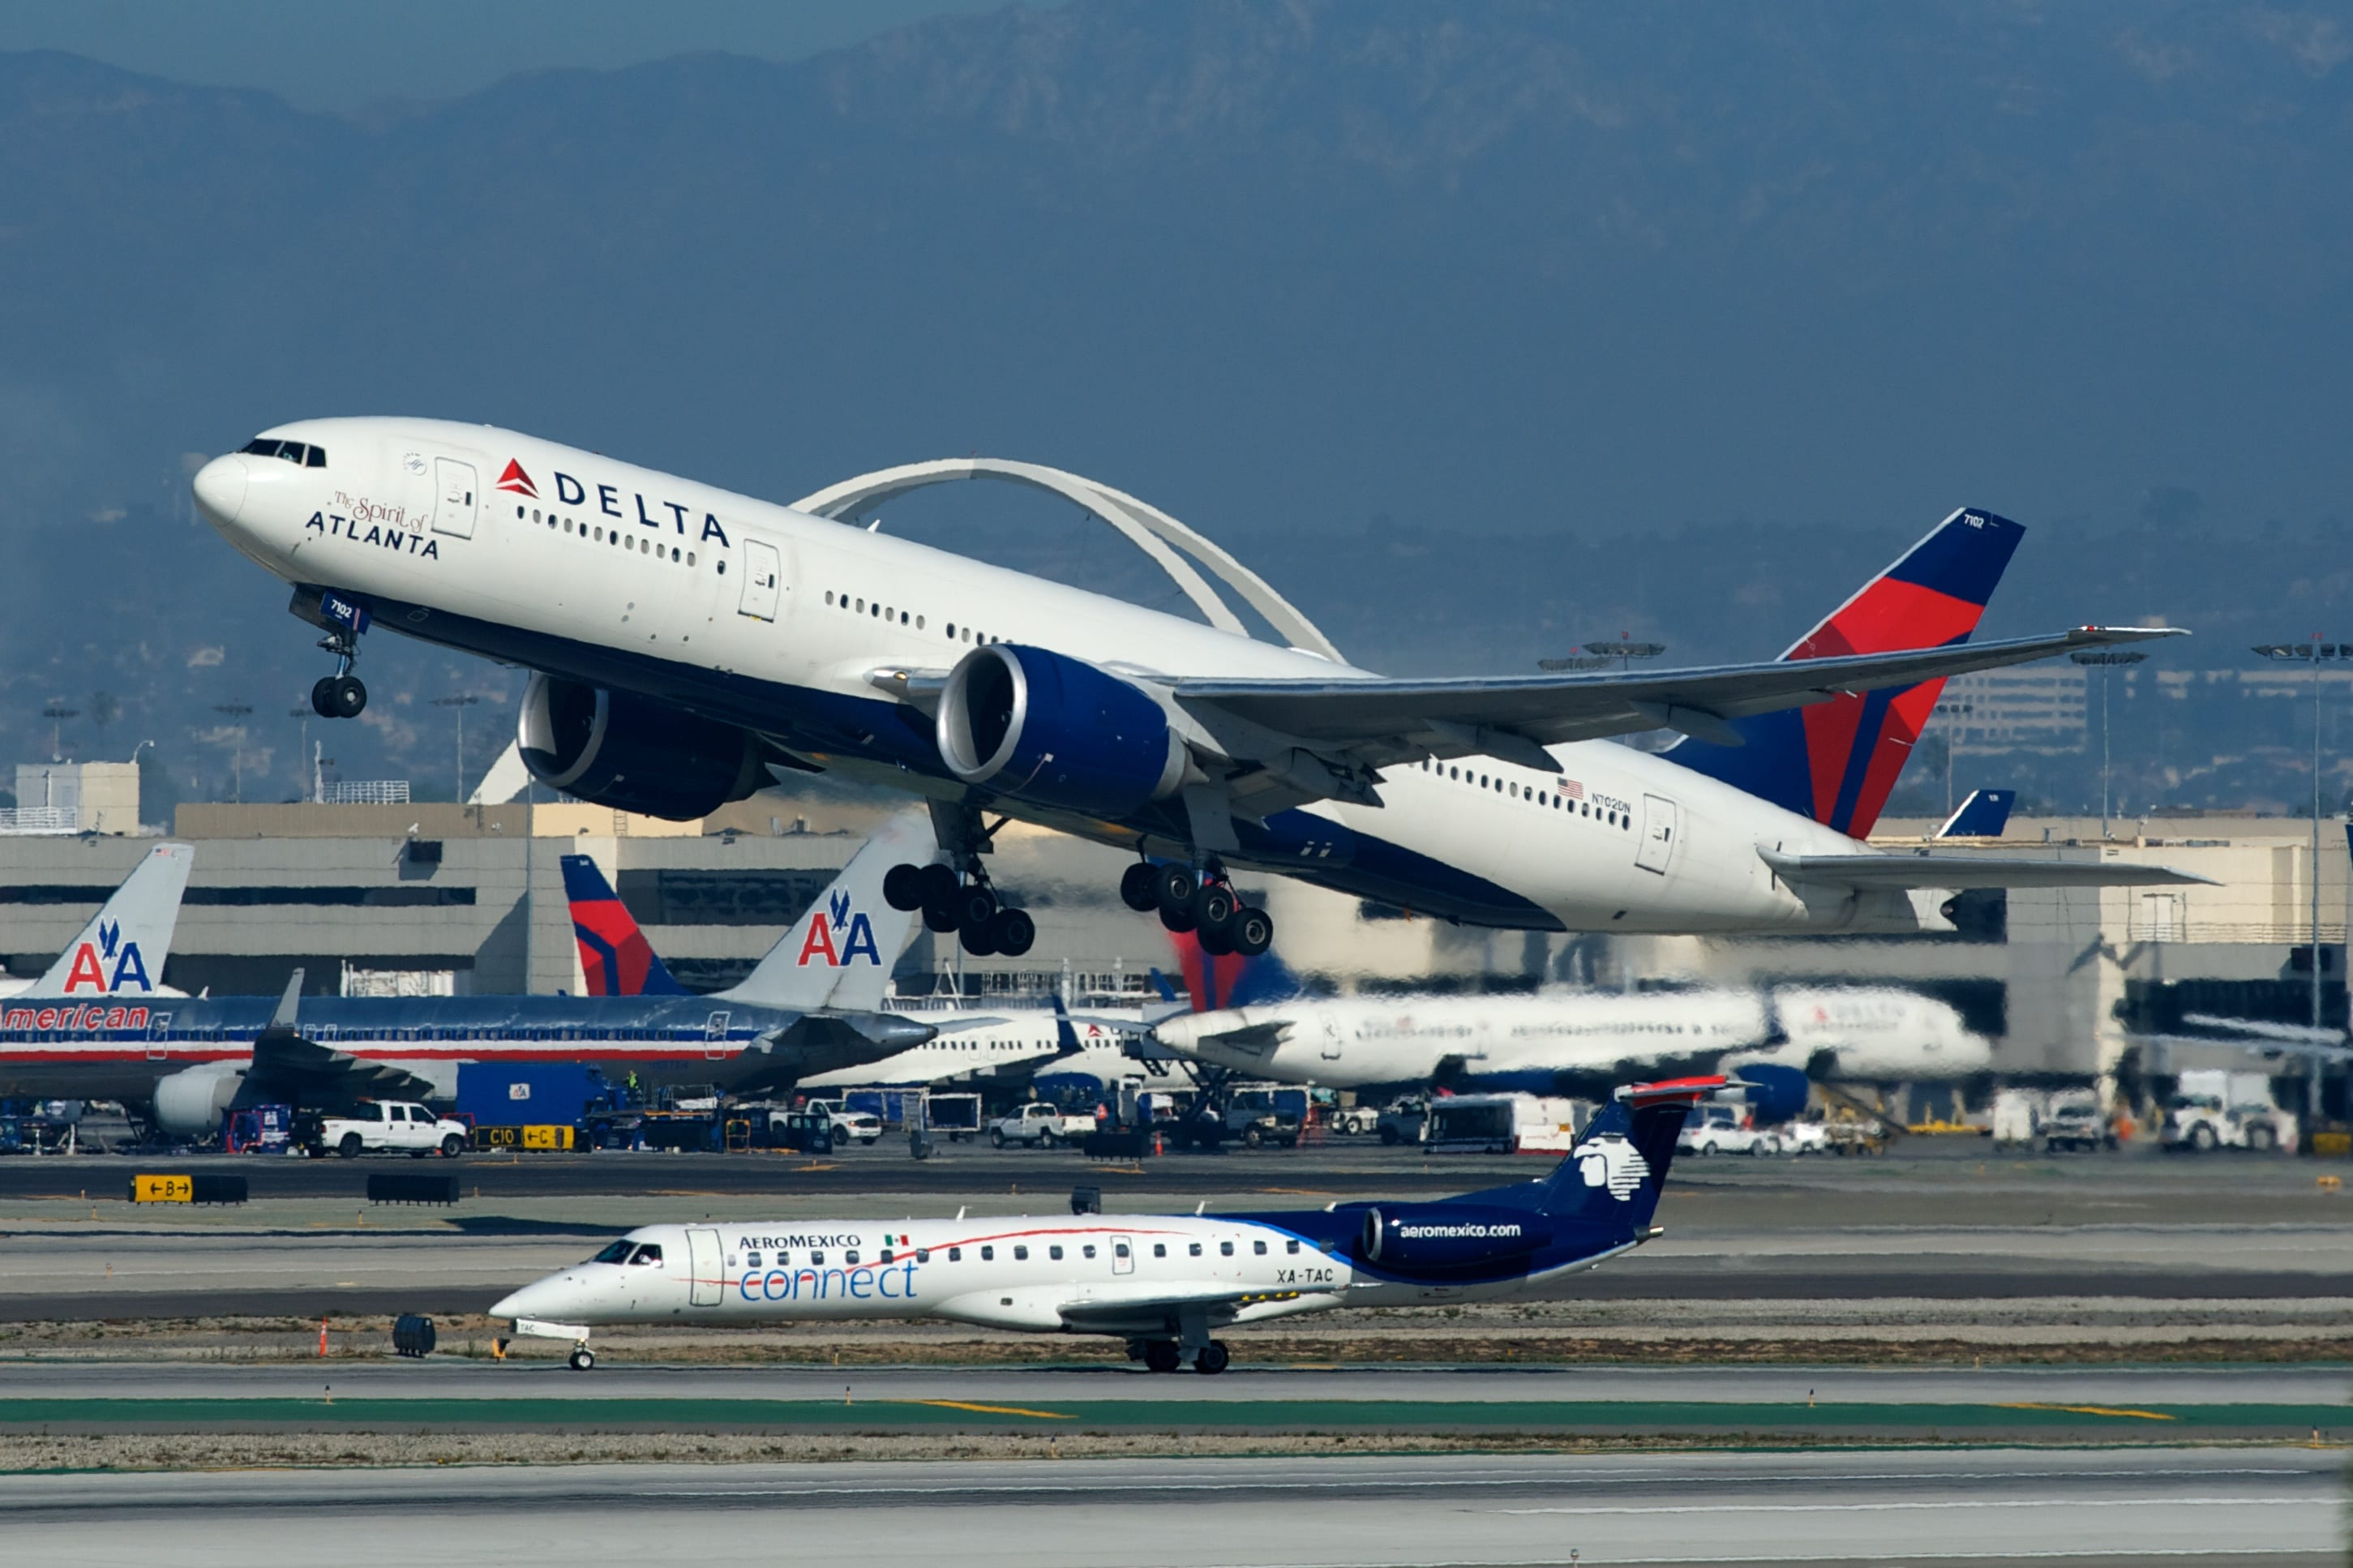 delta air lines stock price could climb again stock investor